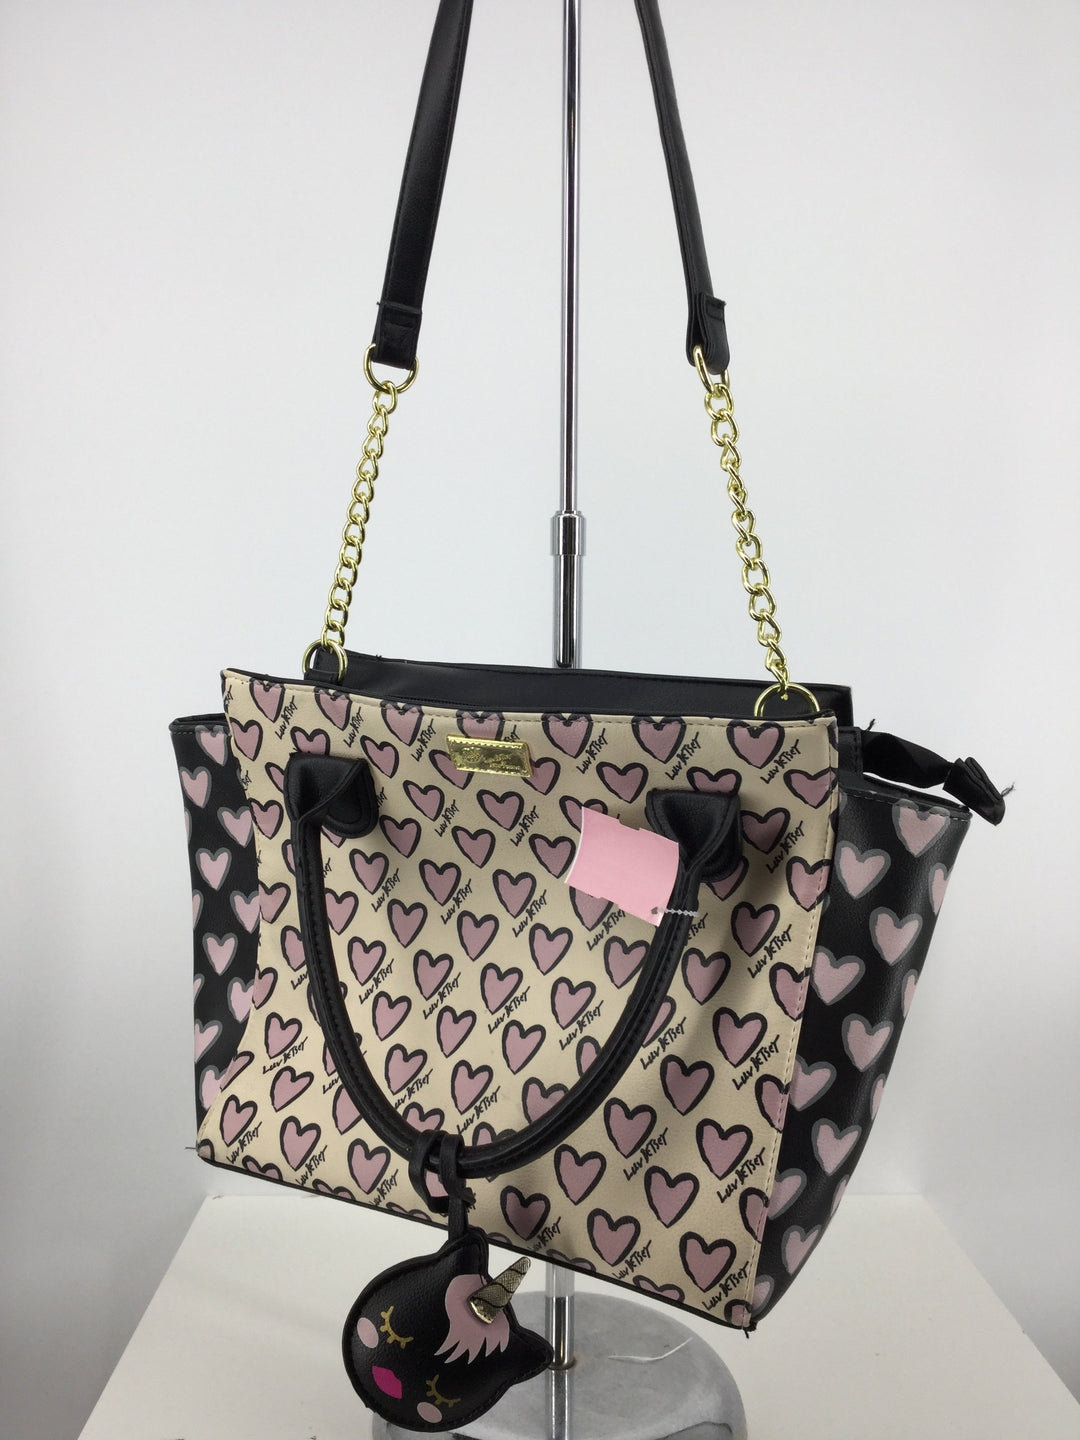 Primary Photo - brand: betsey johnson , style: handbag , color: pinkblack , size: medium , sku: 128-3212-47391